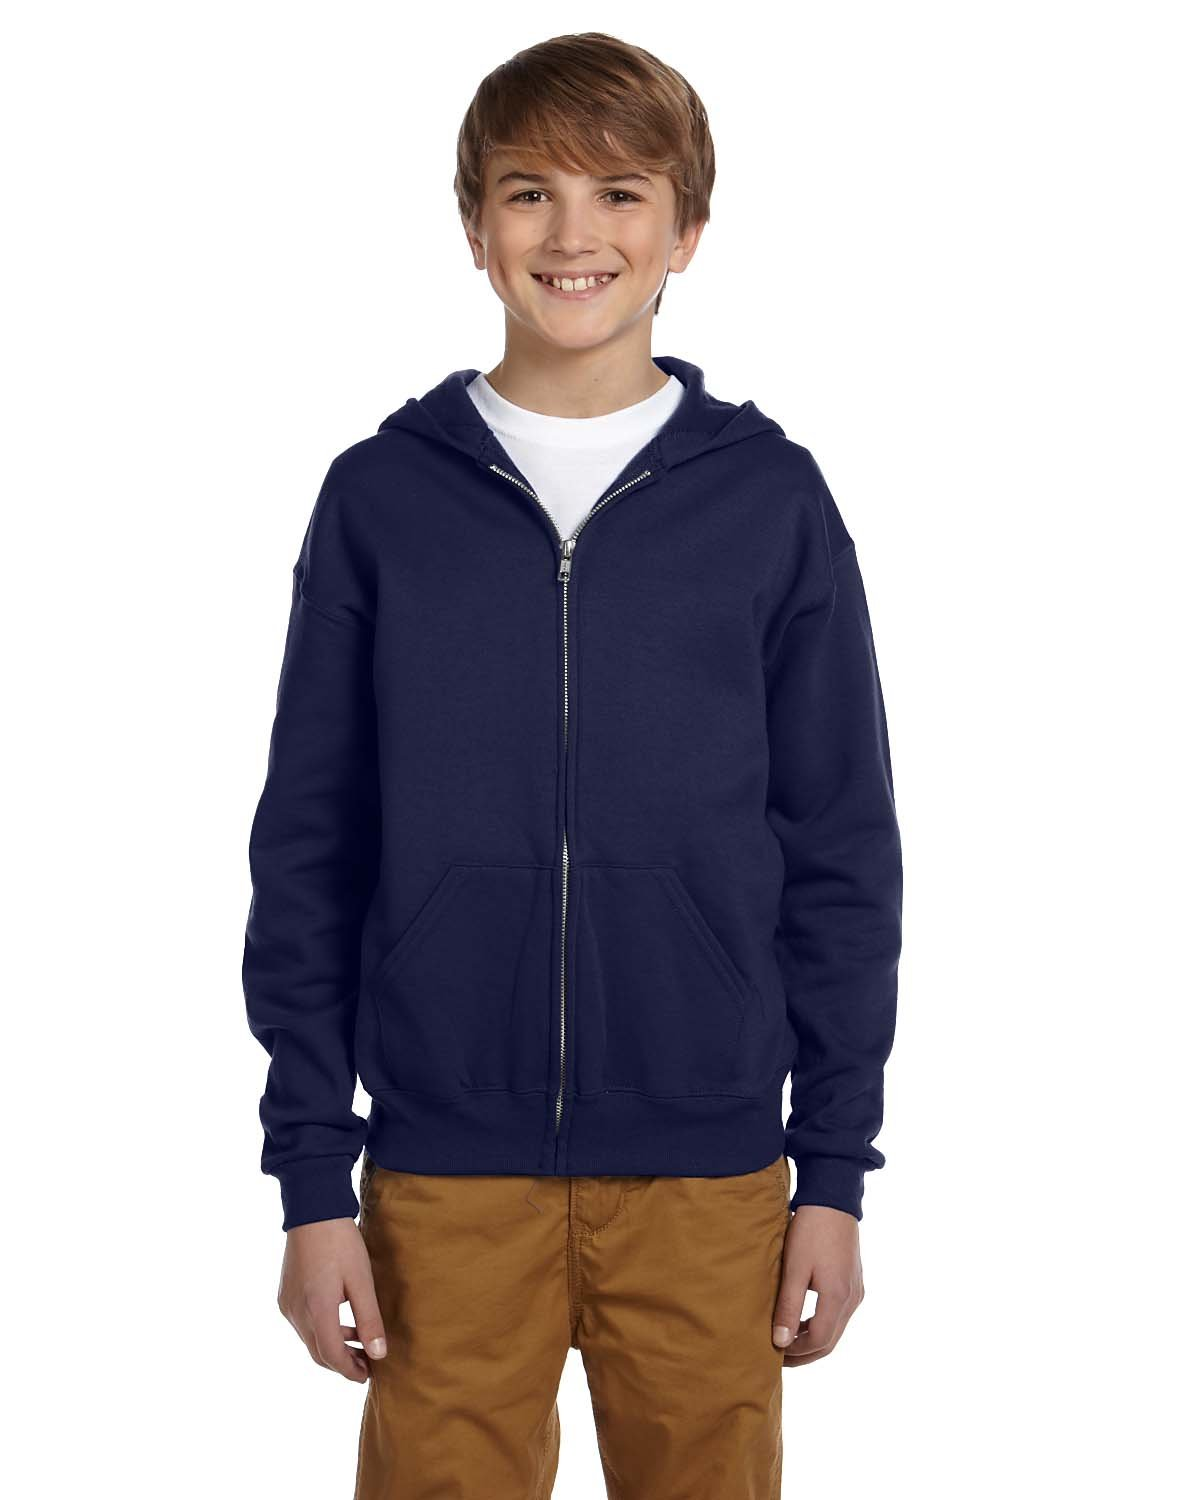 Jerzees Youth Nublend Full-Zip Hooded Sweatshirt, J Nvy, Small